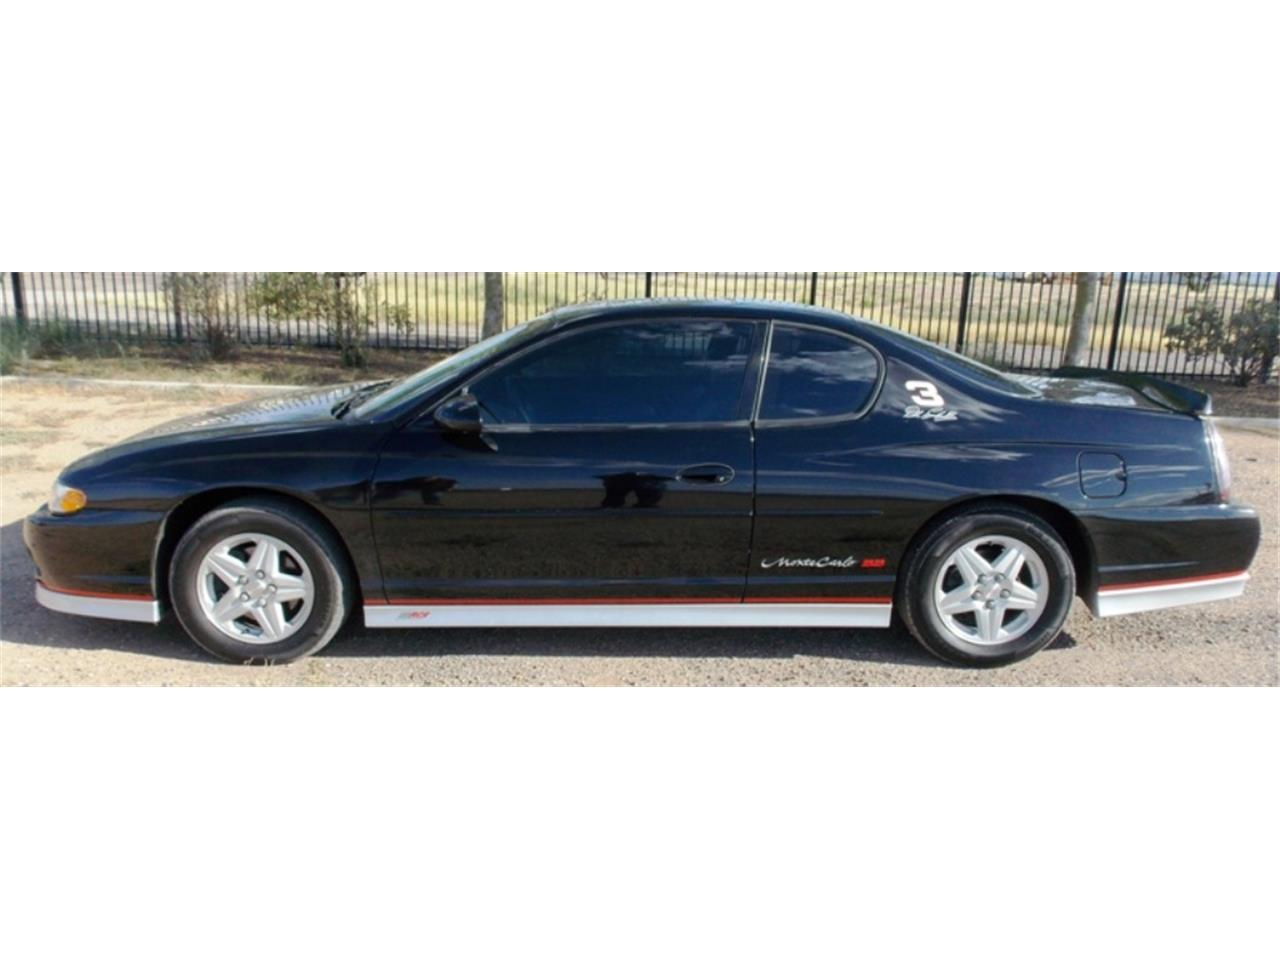 Large Picture of 2002 Monte Carlo SS Intimidator located in AZ - Arizona - $10,500.00 - QWDS